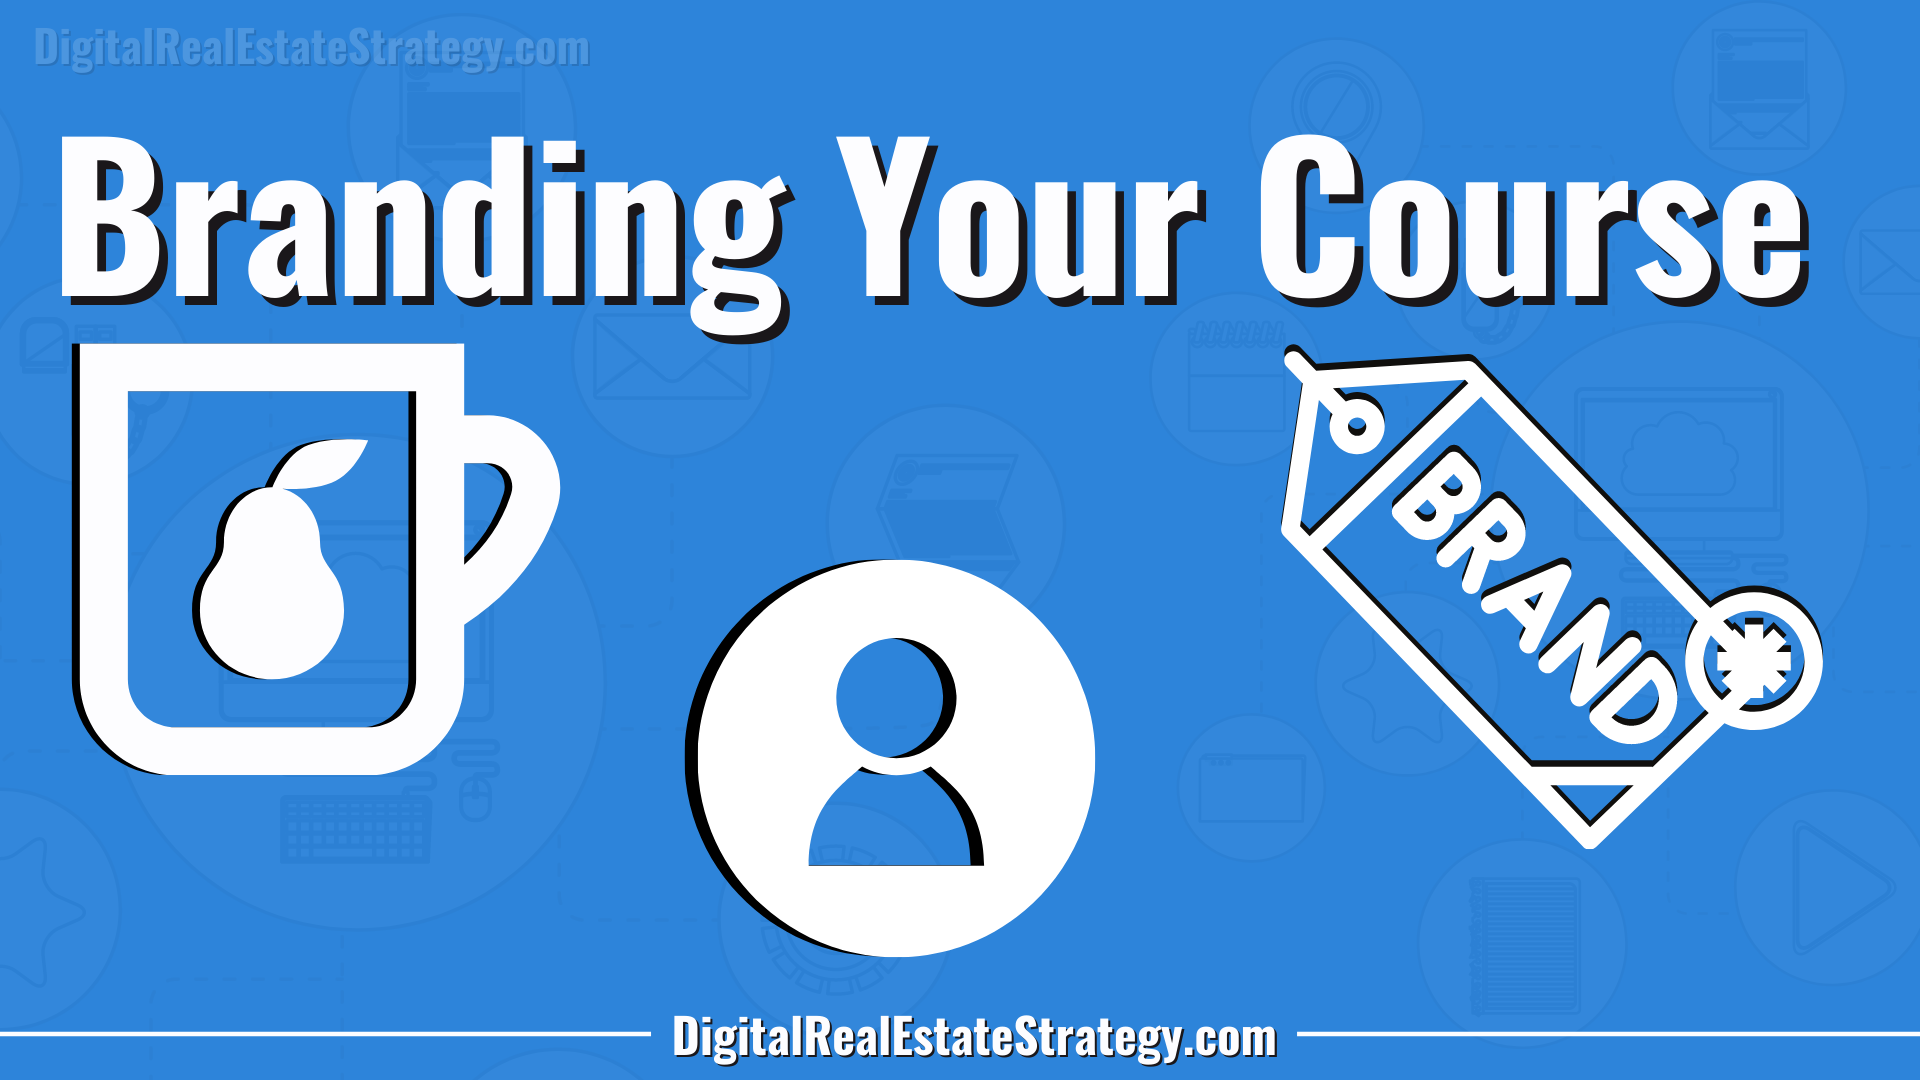 Branding Your Course Image